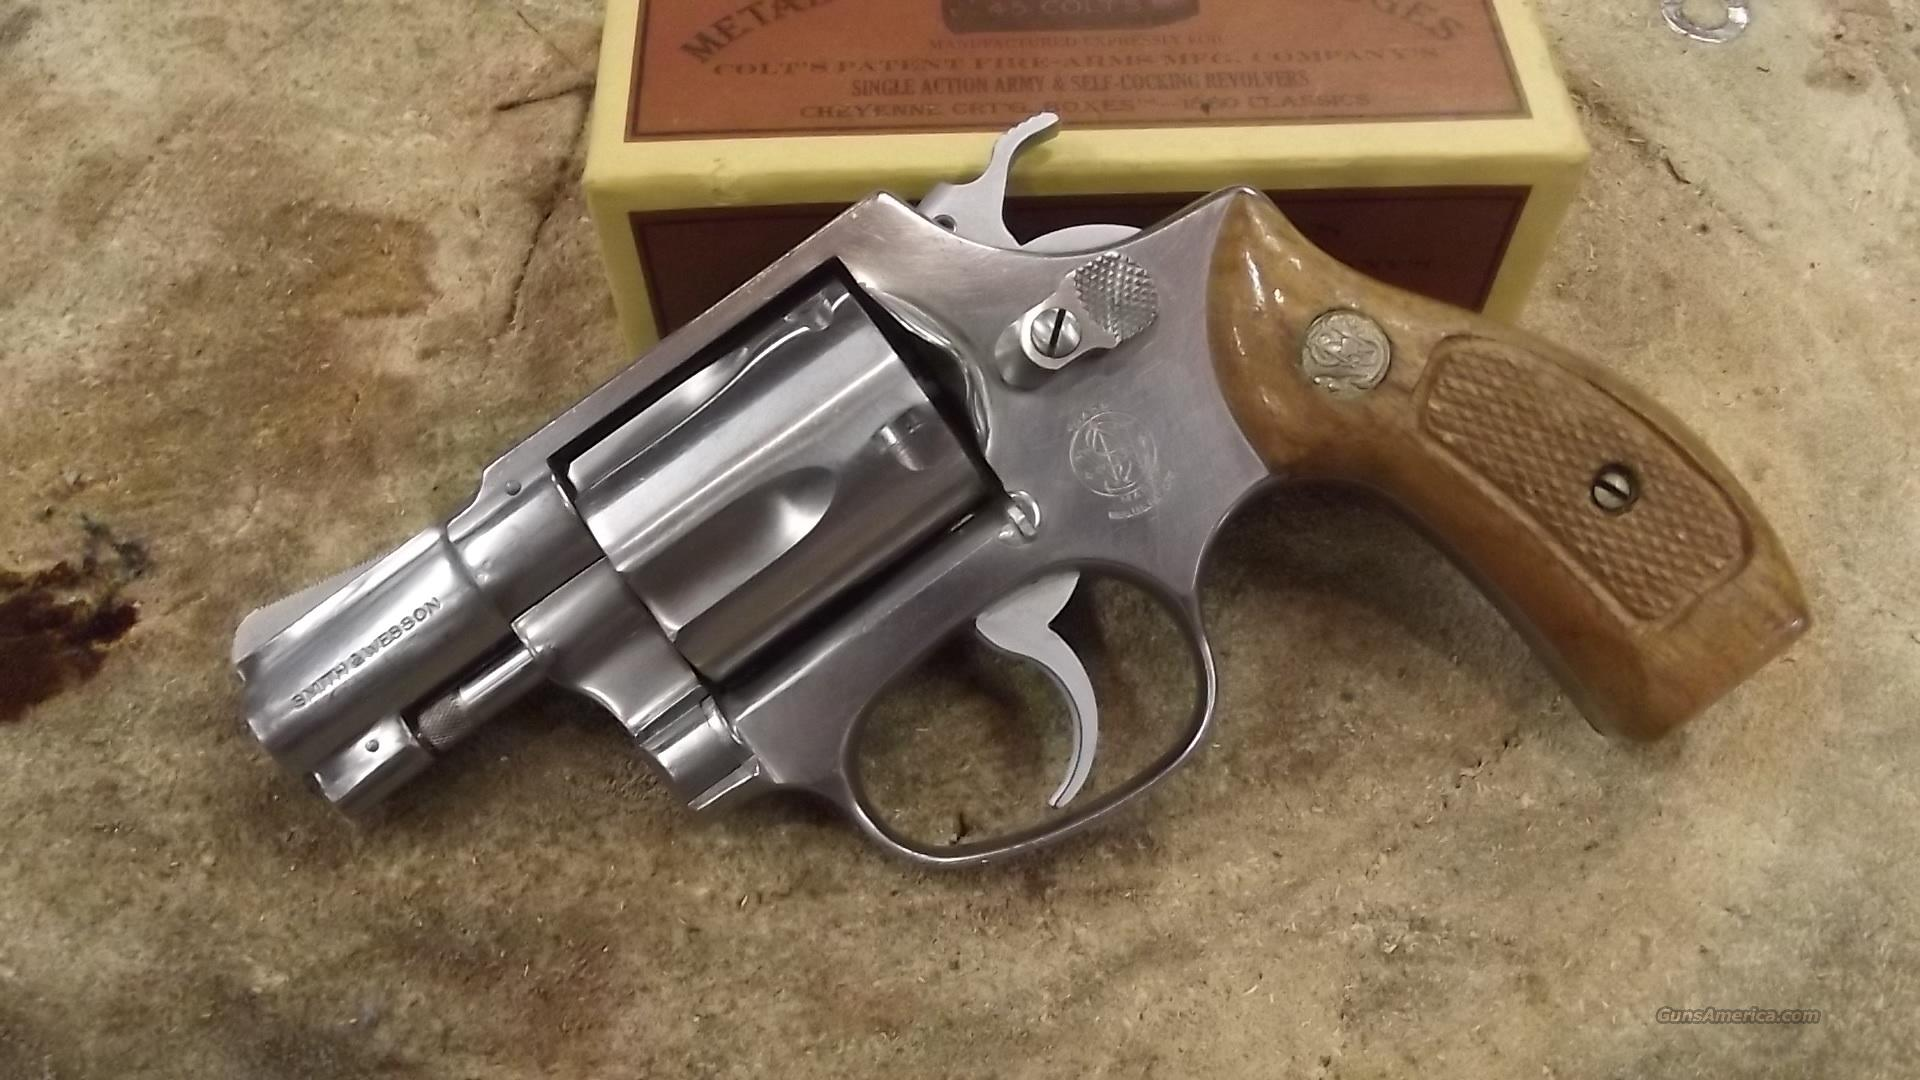 Smith and Wesson model 60.  38 special  Guns > Pistols > Smith & Wesson Revolvers > Pocket Pistols